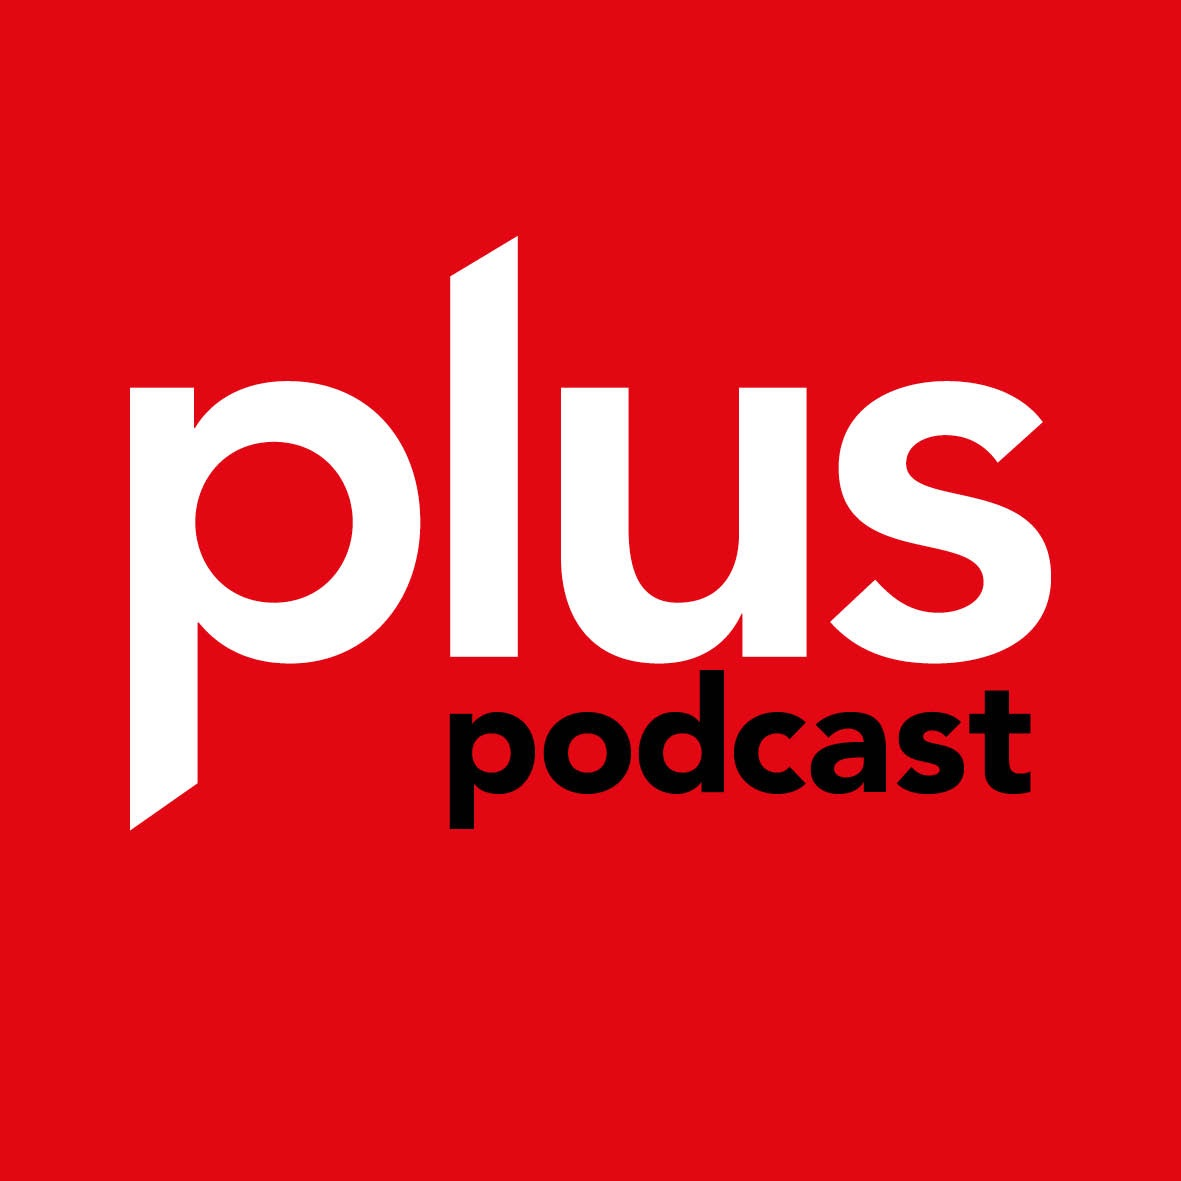 Plus Podcast logo